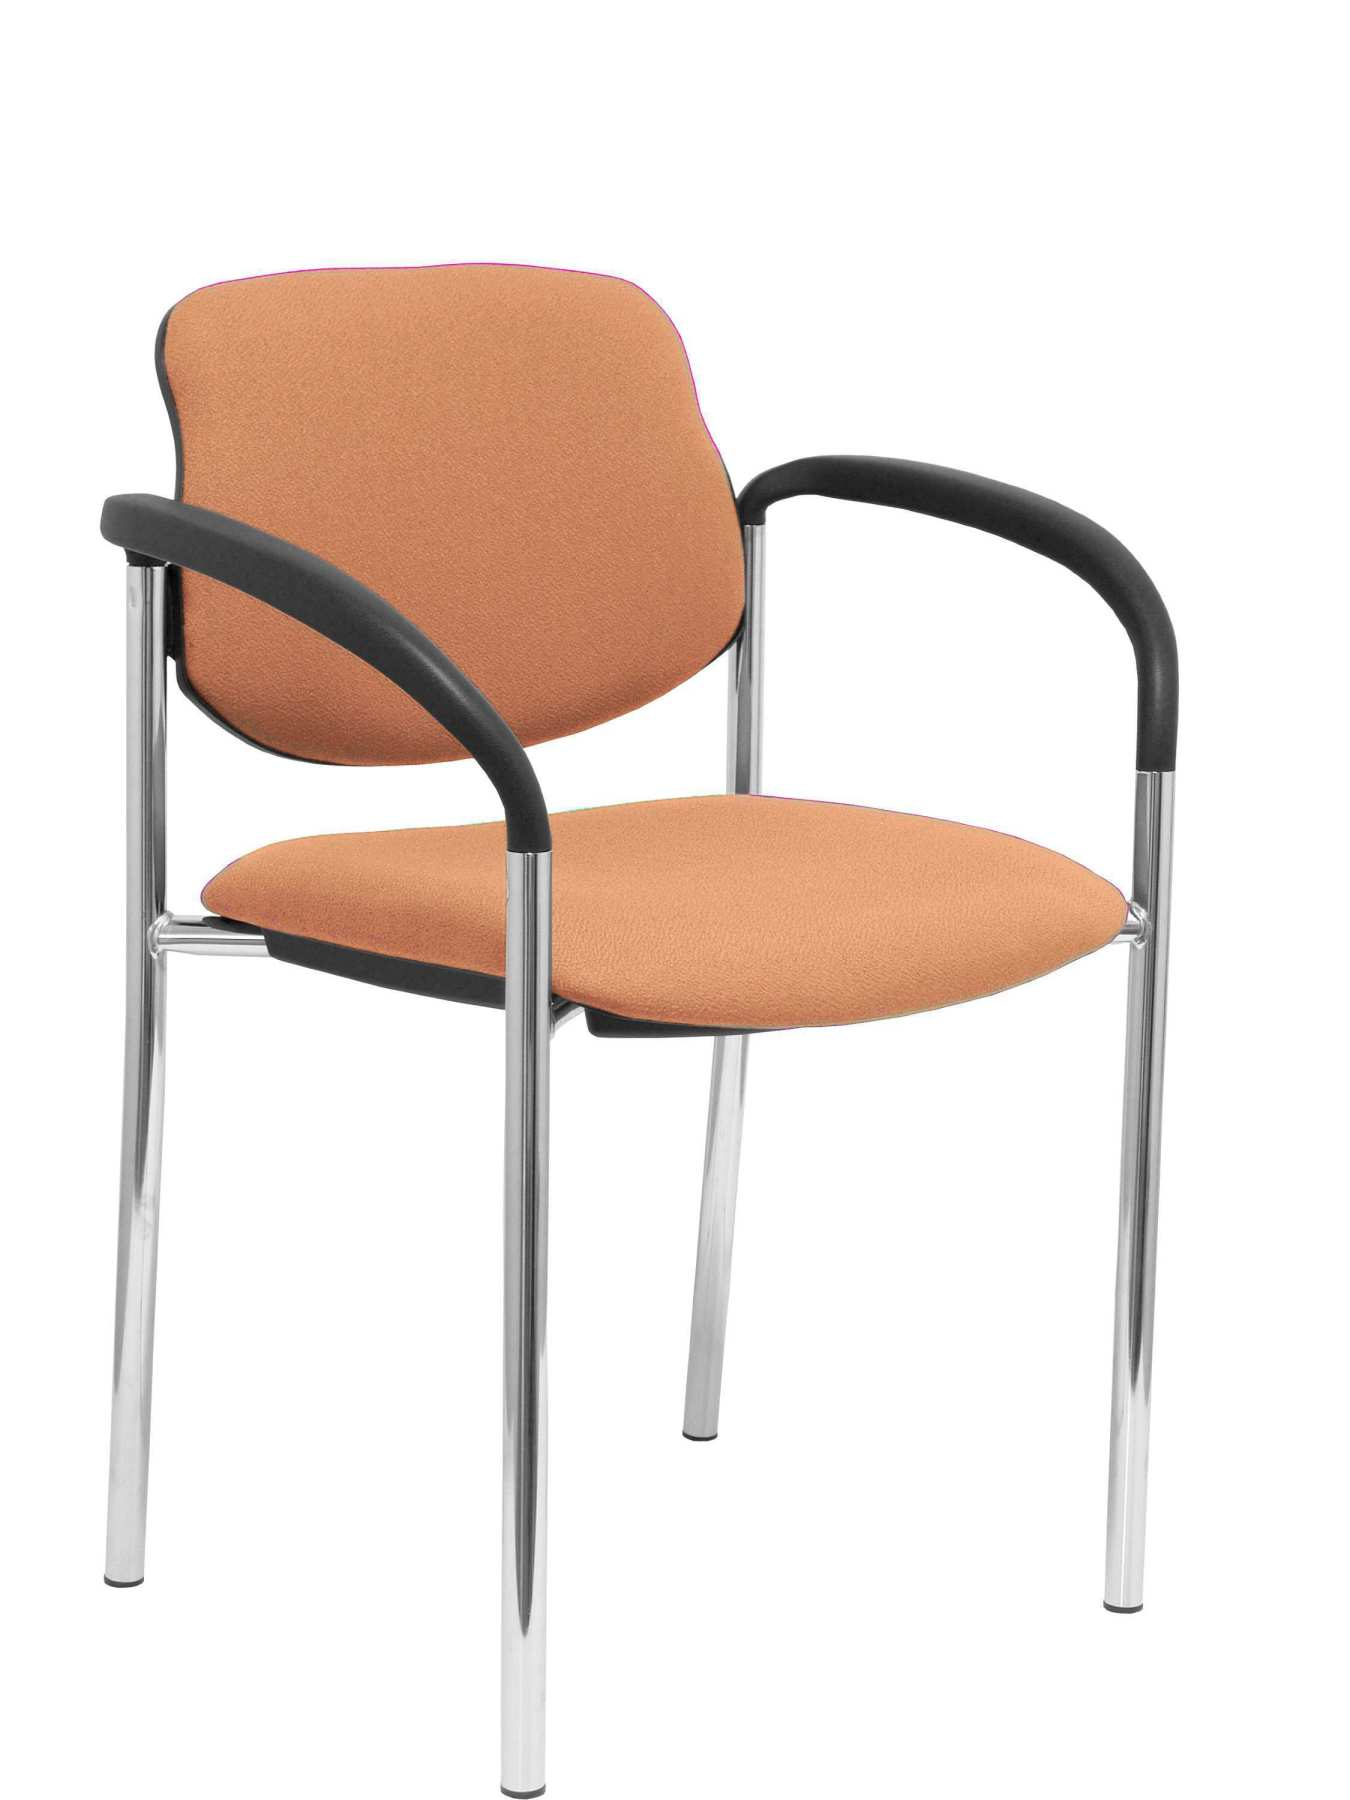 Confident Chair 4-leg And Estructrua Chrome Arms-Seat And Back Upholstered In Fabric BALI Brown